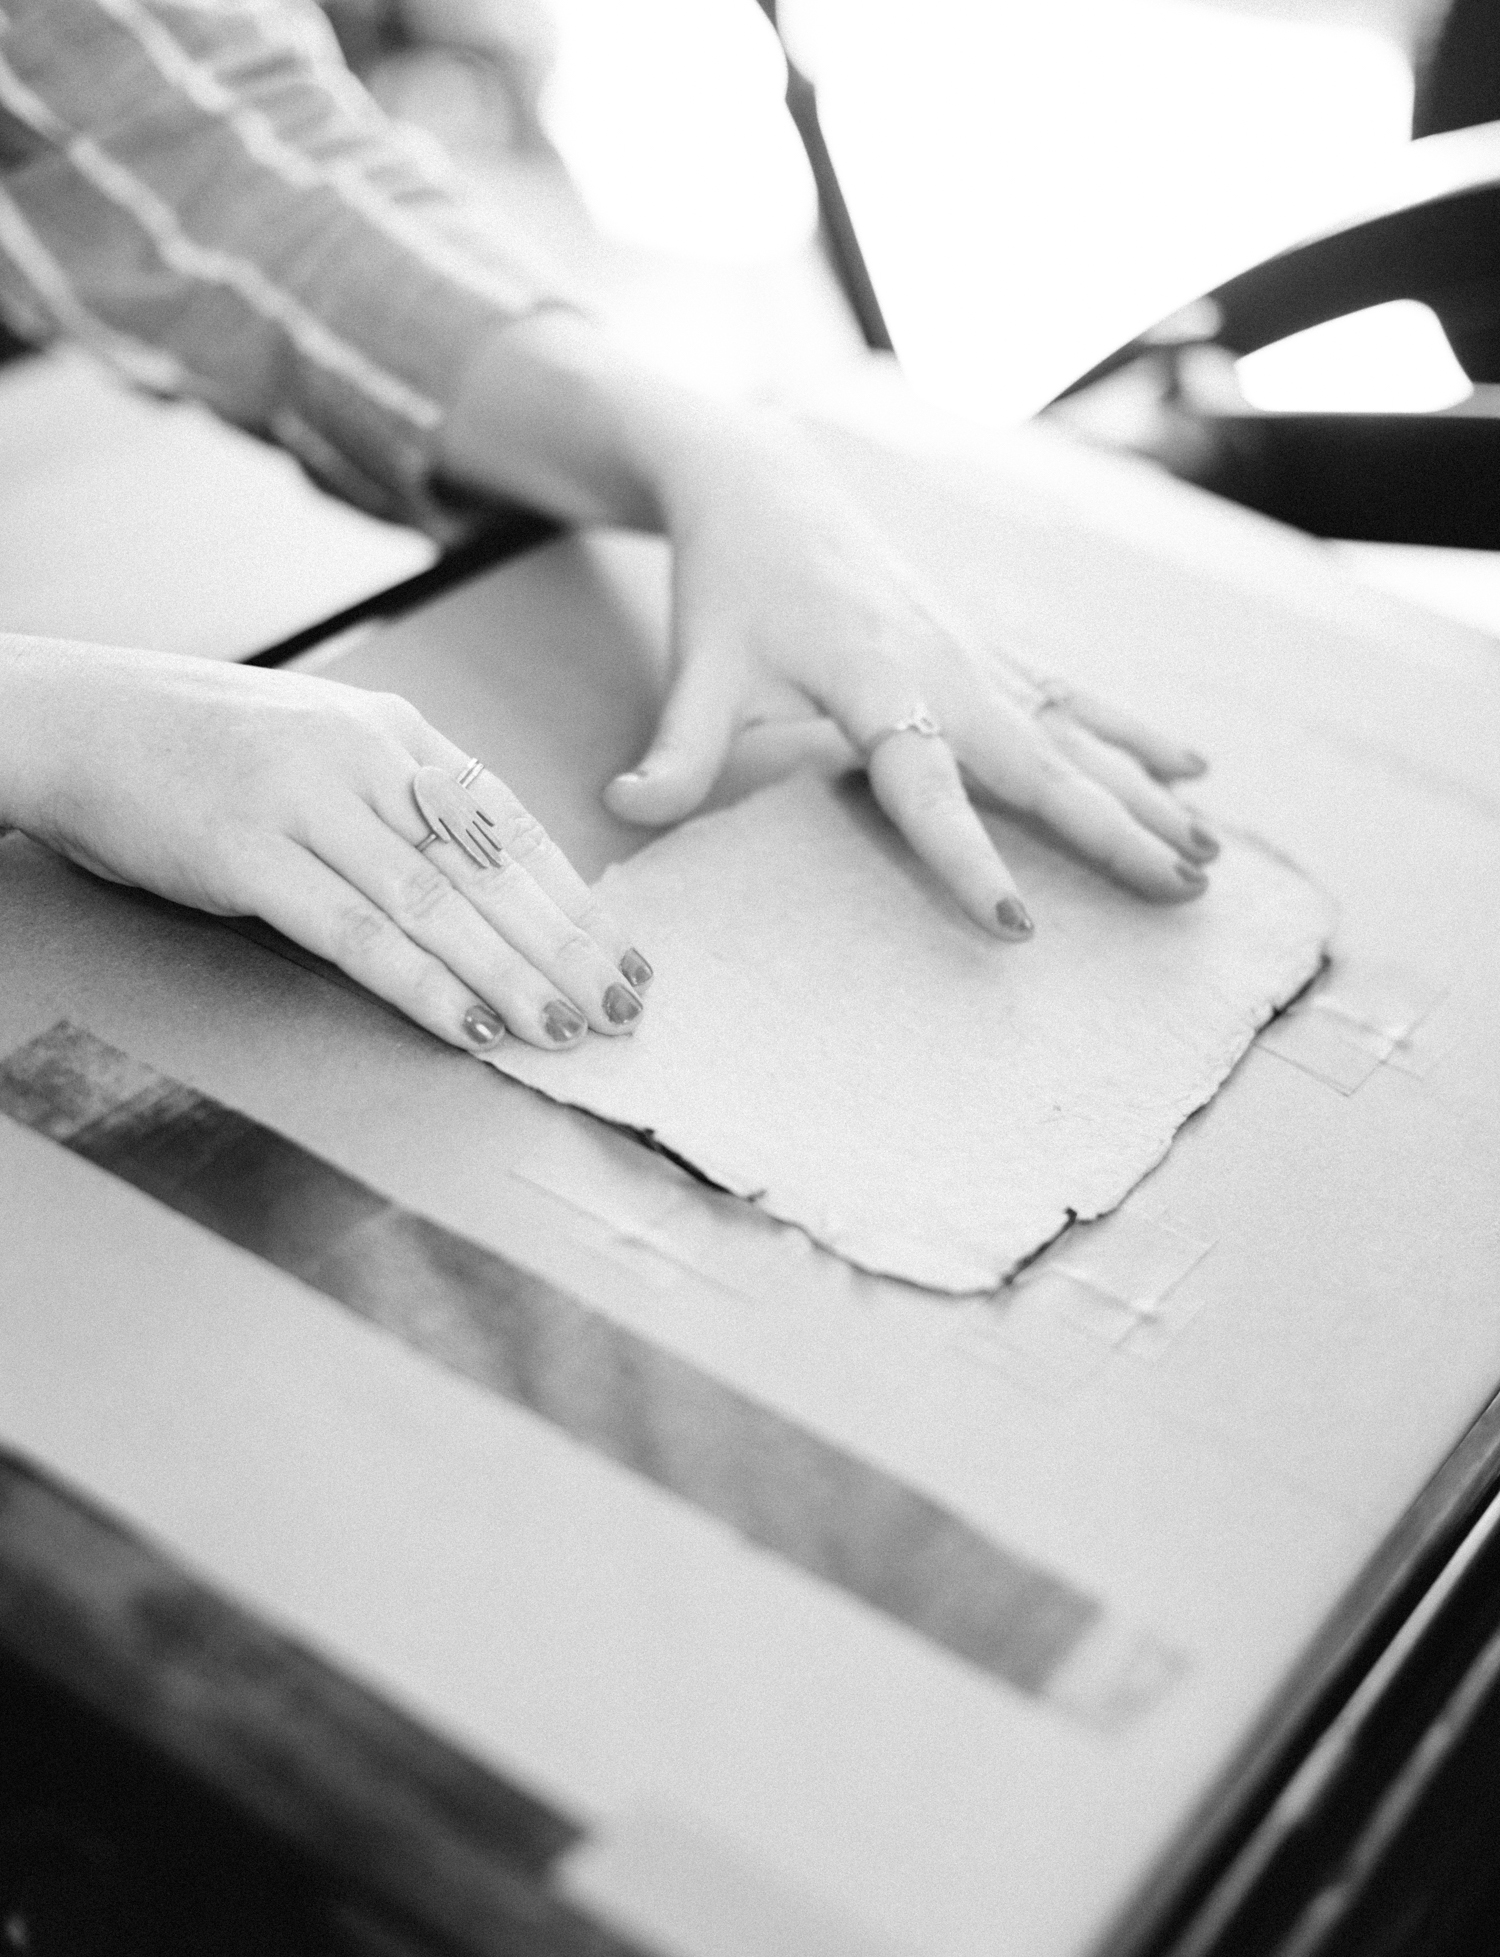 A designer's hands adjust paper on an antique letterpress in Brighton, Michigan during brand photography